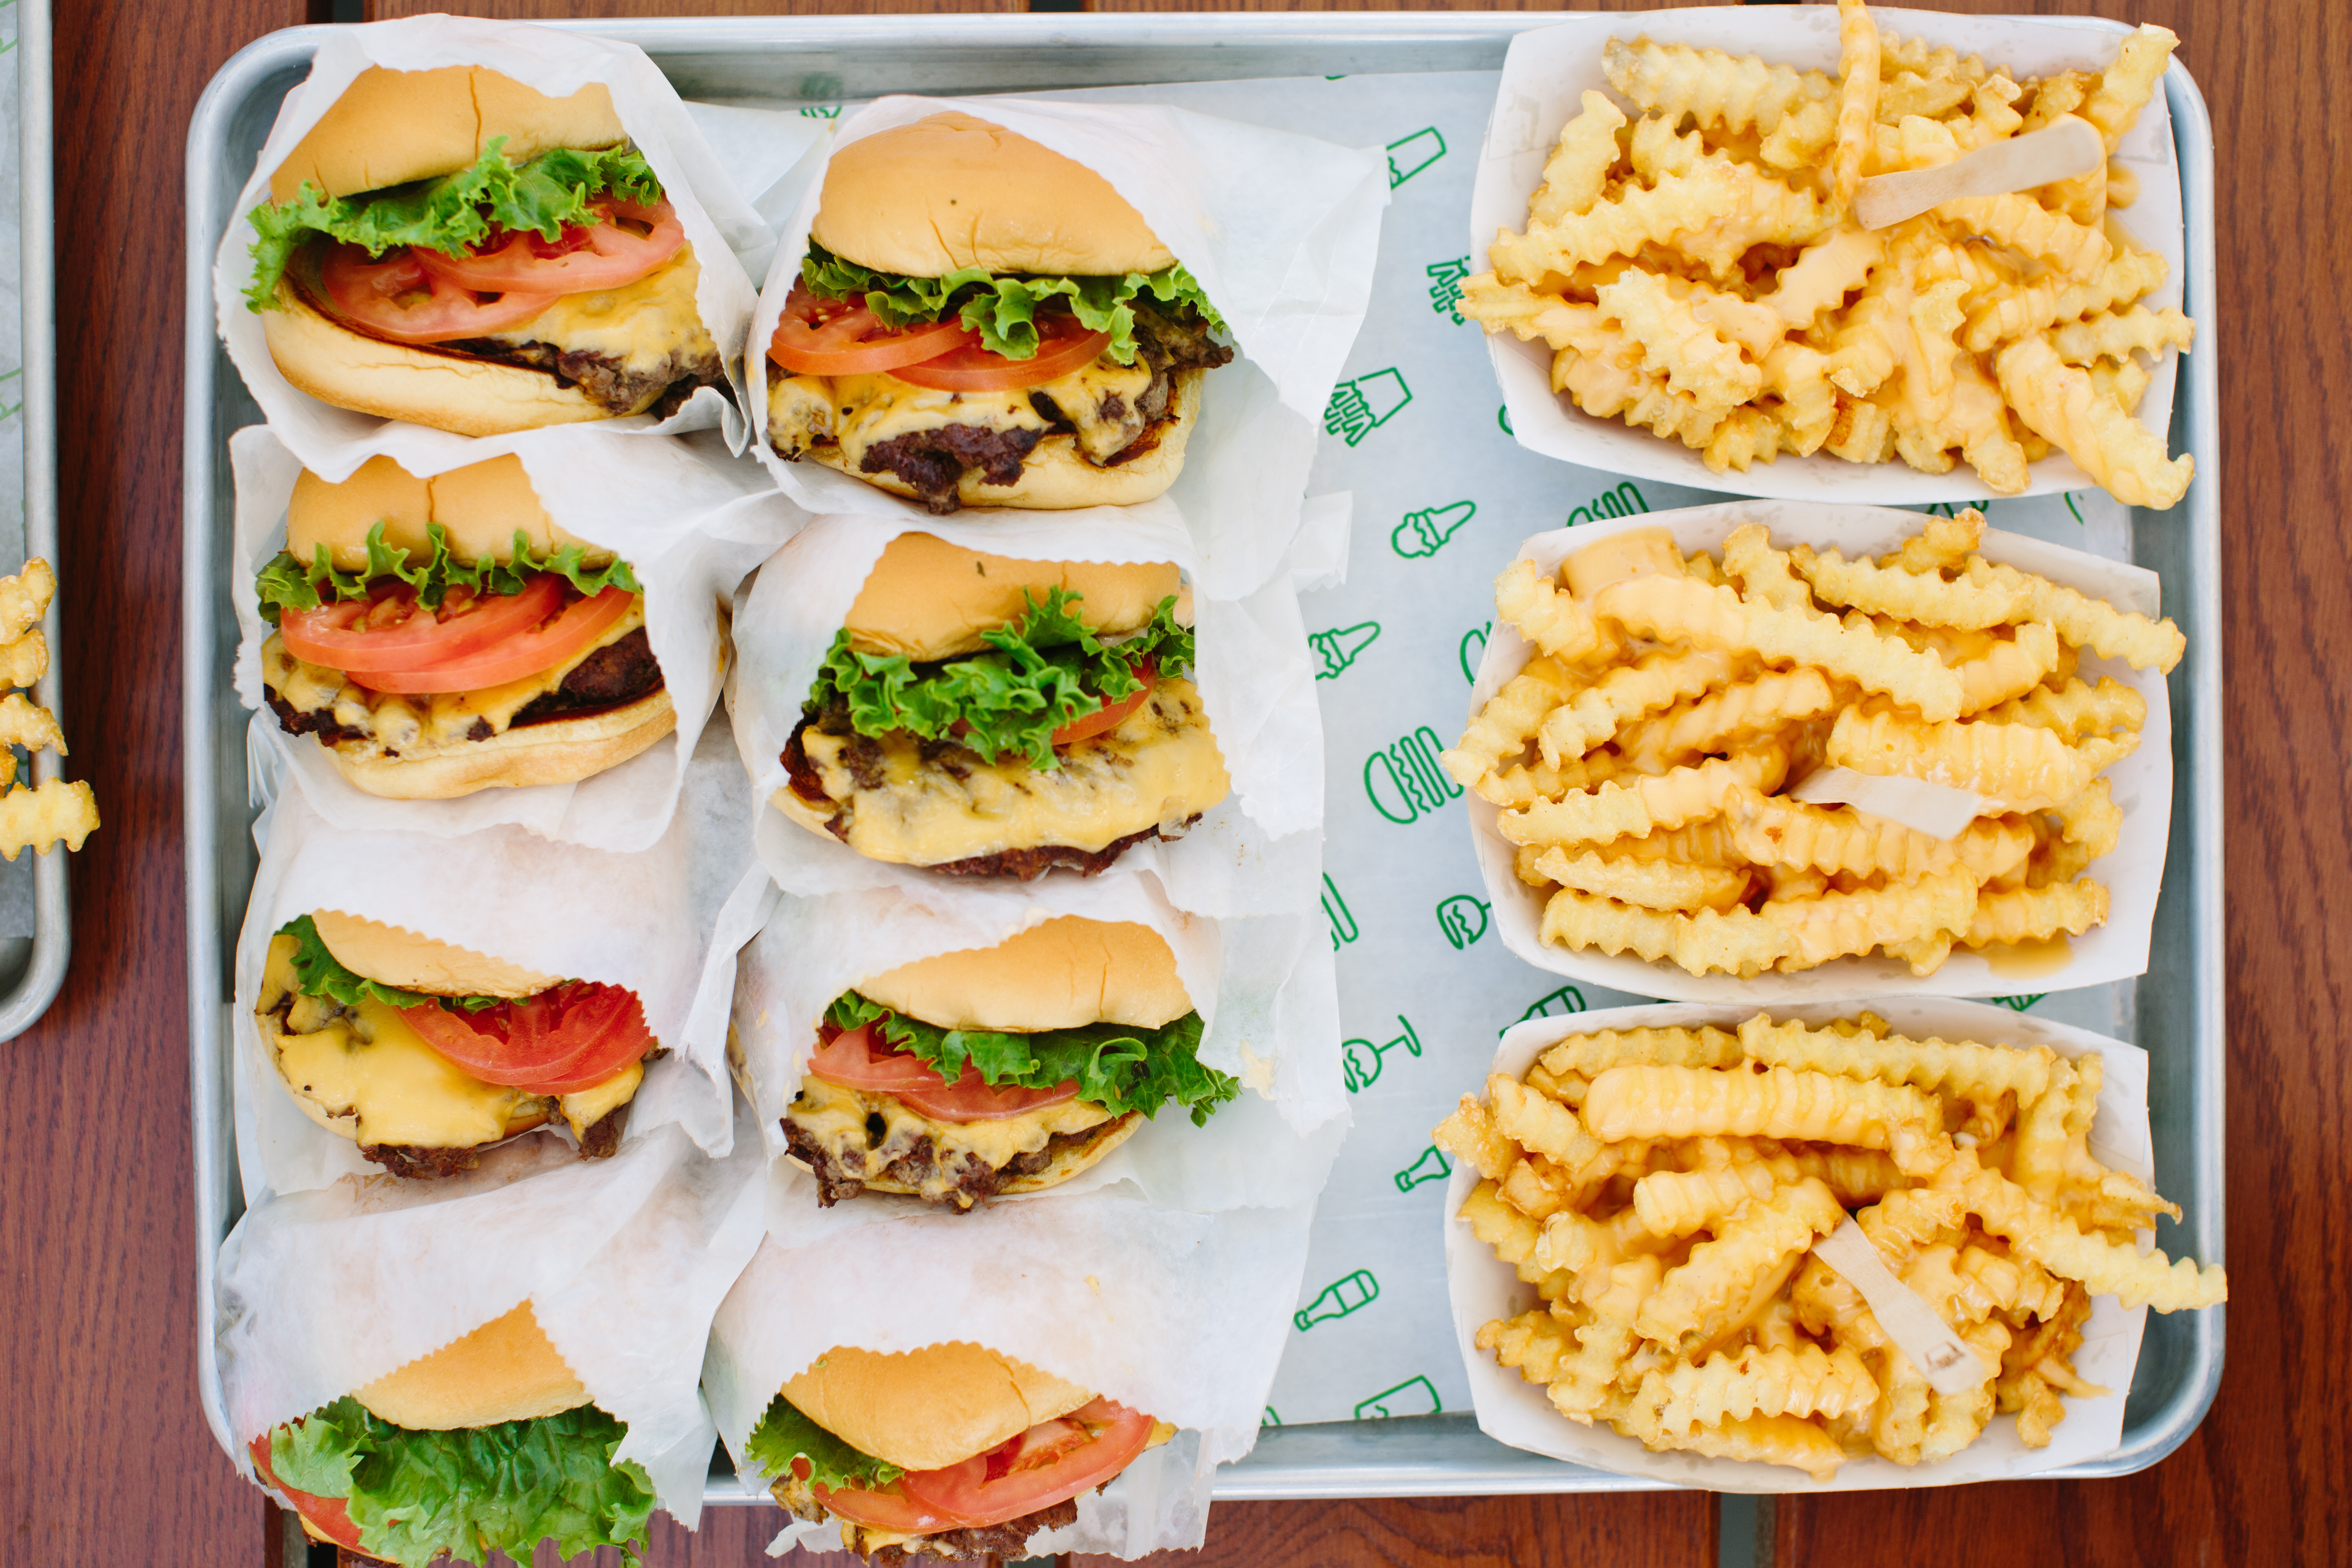 2018 brought us a Shake Shack, and we haven't been able to stop eating it. (Photo Courtesy: Shake Shack)